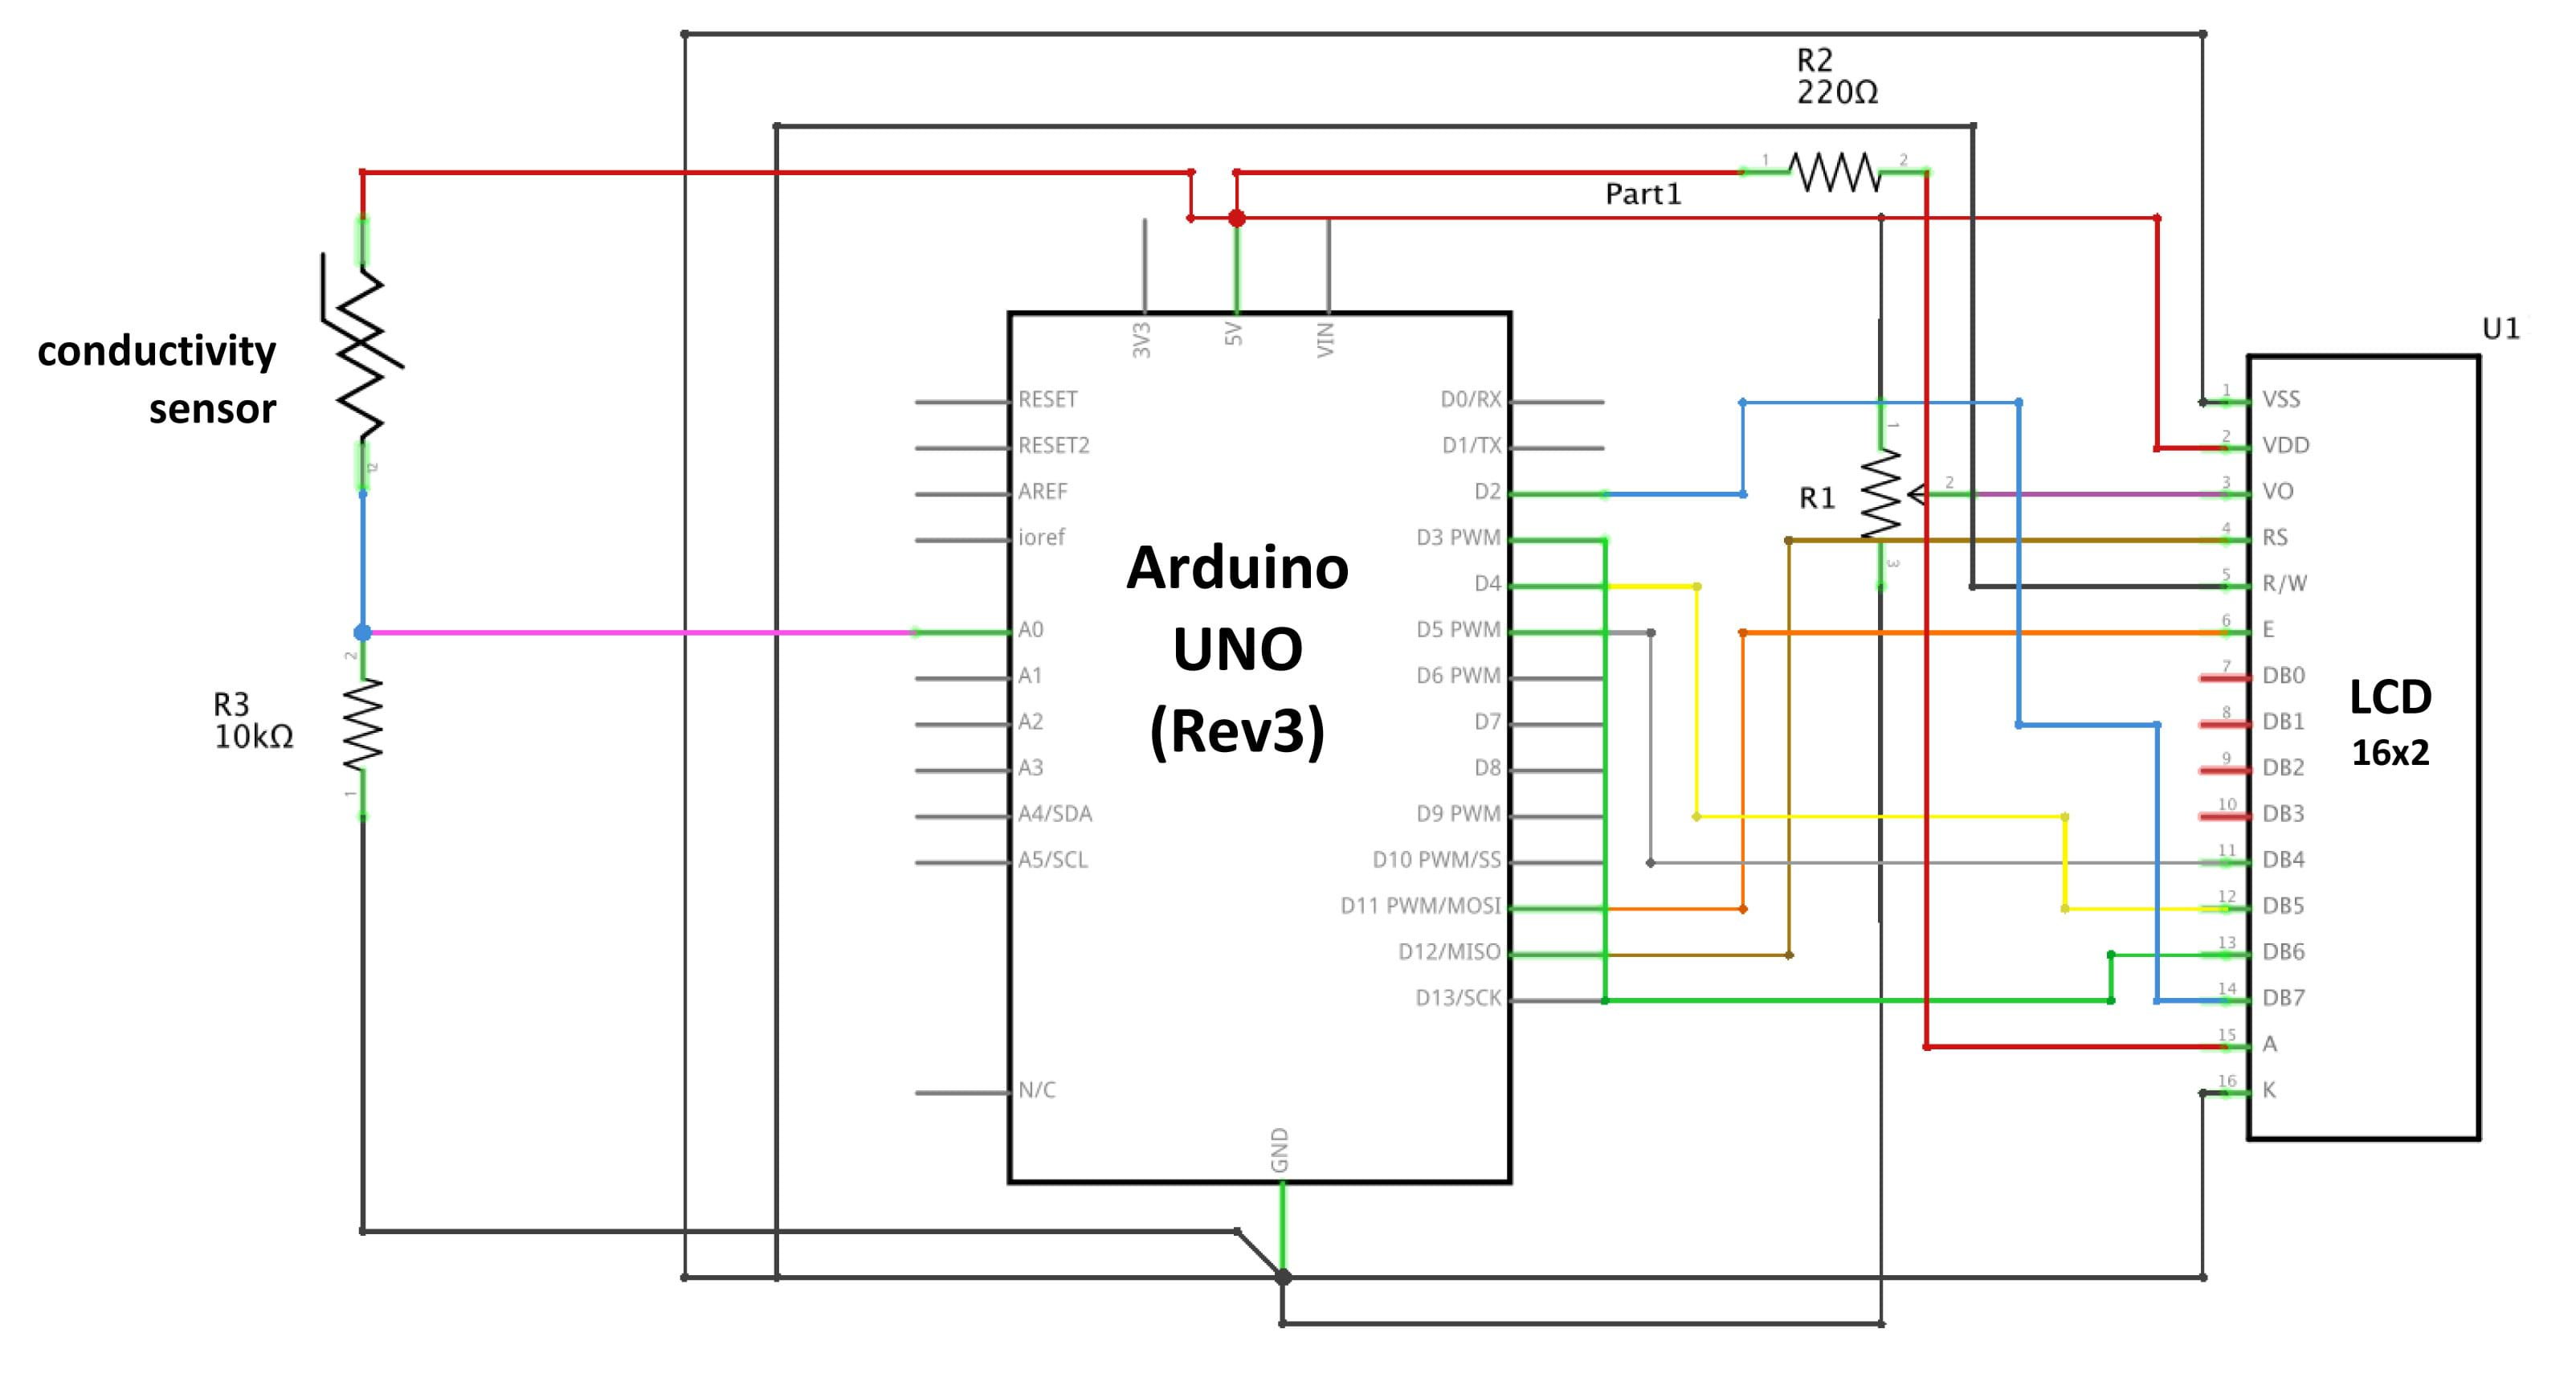 Build And Test A Conductivity Probe With Arduino Activity Circuit Diagram Worksheet High School Shows The Circuitry Needed To Connect An Uno Breadboard That Has